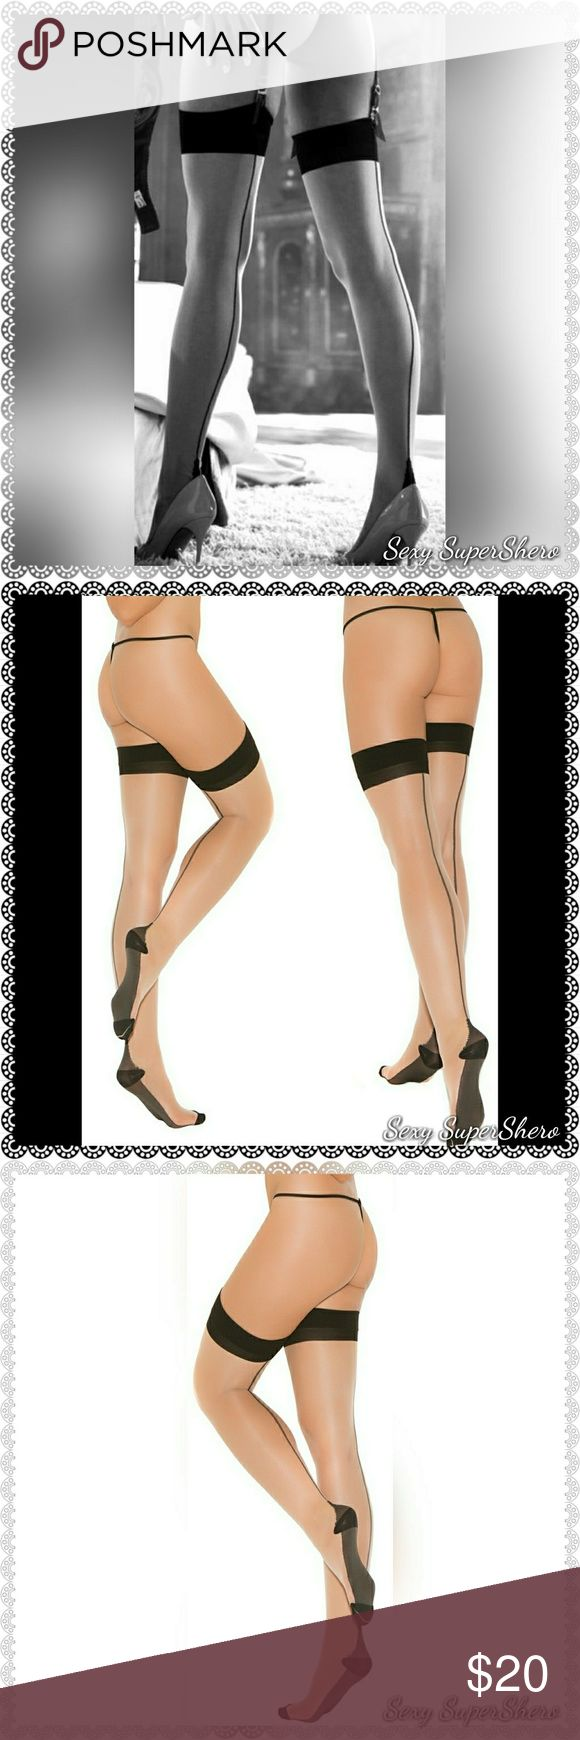 🆕Sexy Sheer Black Foot & Seam Thigh-hi's lingerie Sheer Nude & Black Cuban foot thigh hi with sexy black back seam and top. Pair with my black garter belt or many of my lingerie sets to complete a super hot look!😻  Size(s): One Size (see size chart pic for OS, not available in QS)  Color(s): Nude/Black ( Also available in Nude/Red , perfect for Valentine's day! , See other lisitng)  Material(s): 85% Nylon, 15% Spandex  Prices are FIRM unless bundled 💰 Bundle & Save! 📦 Ships in 1-2…